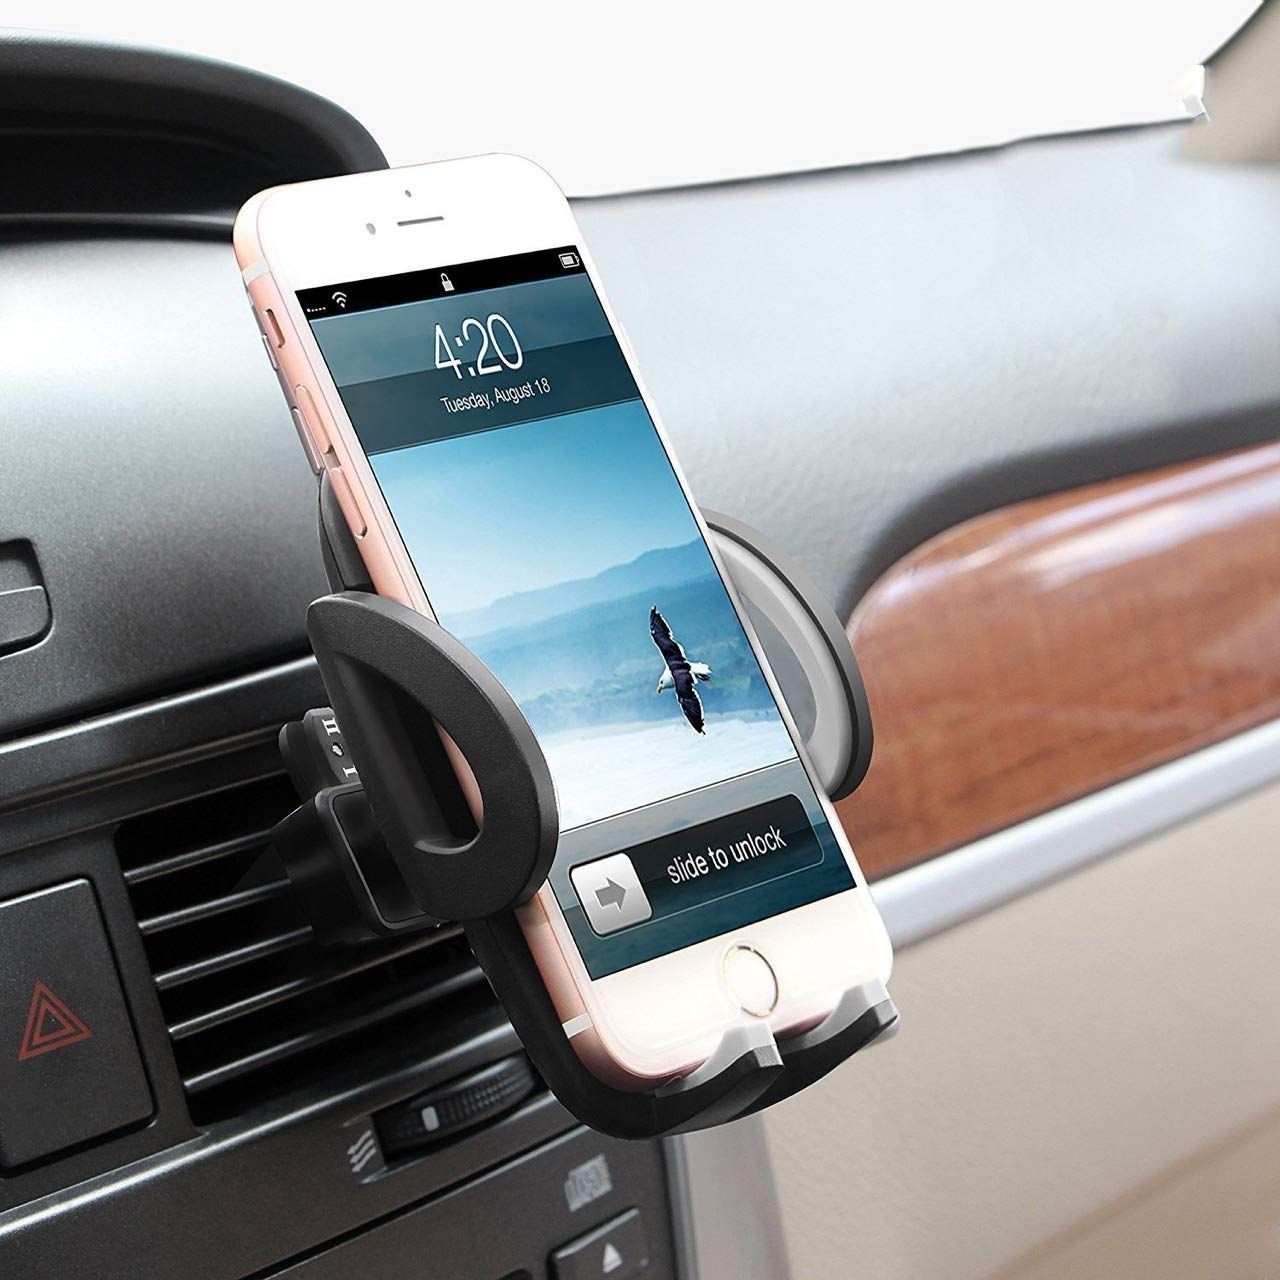 Magnetic Phone Car Mount for Cell Phone Holder for Car Universal Air Vent Car Phone Mount for iPhone X 8 Plus 7 Plus SE 6s Plus 5s 5 4s 4 Samsung Galaxy S9 S8 Note8 S7 Edge S6 Edge S5 S4 Google LG